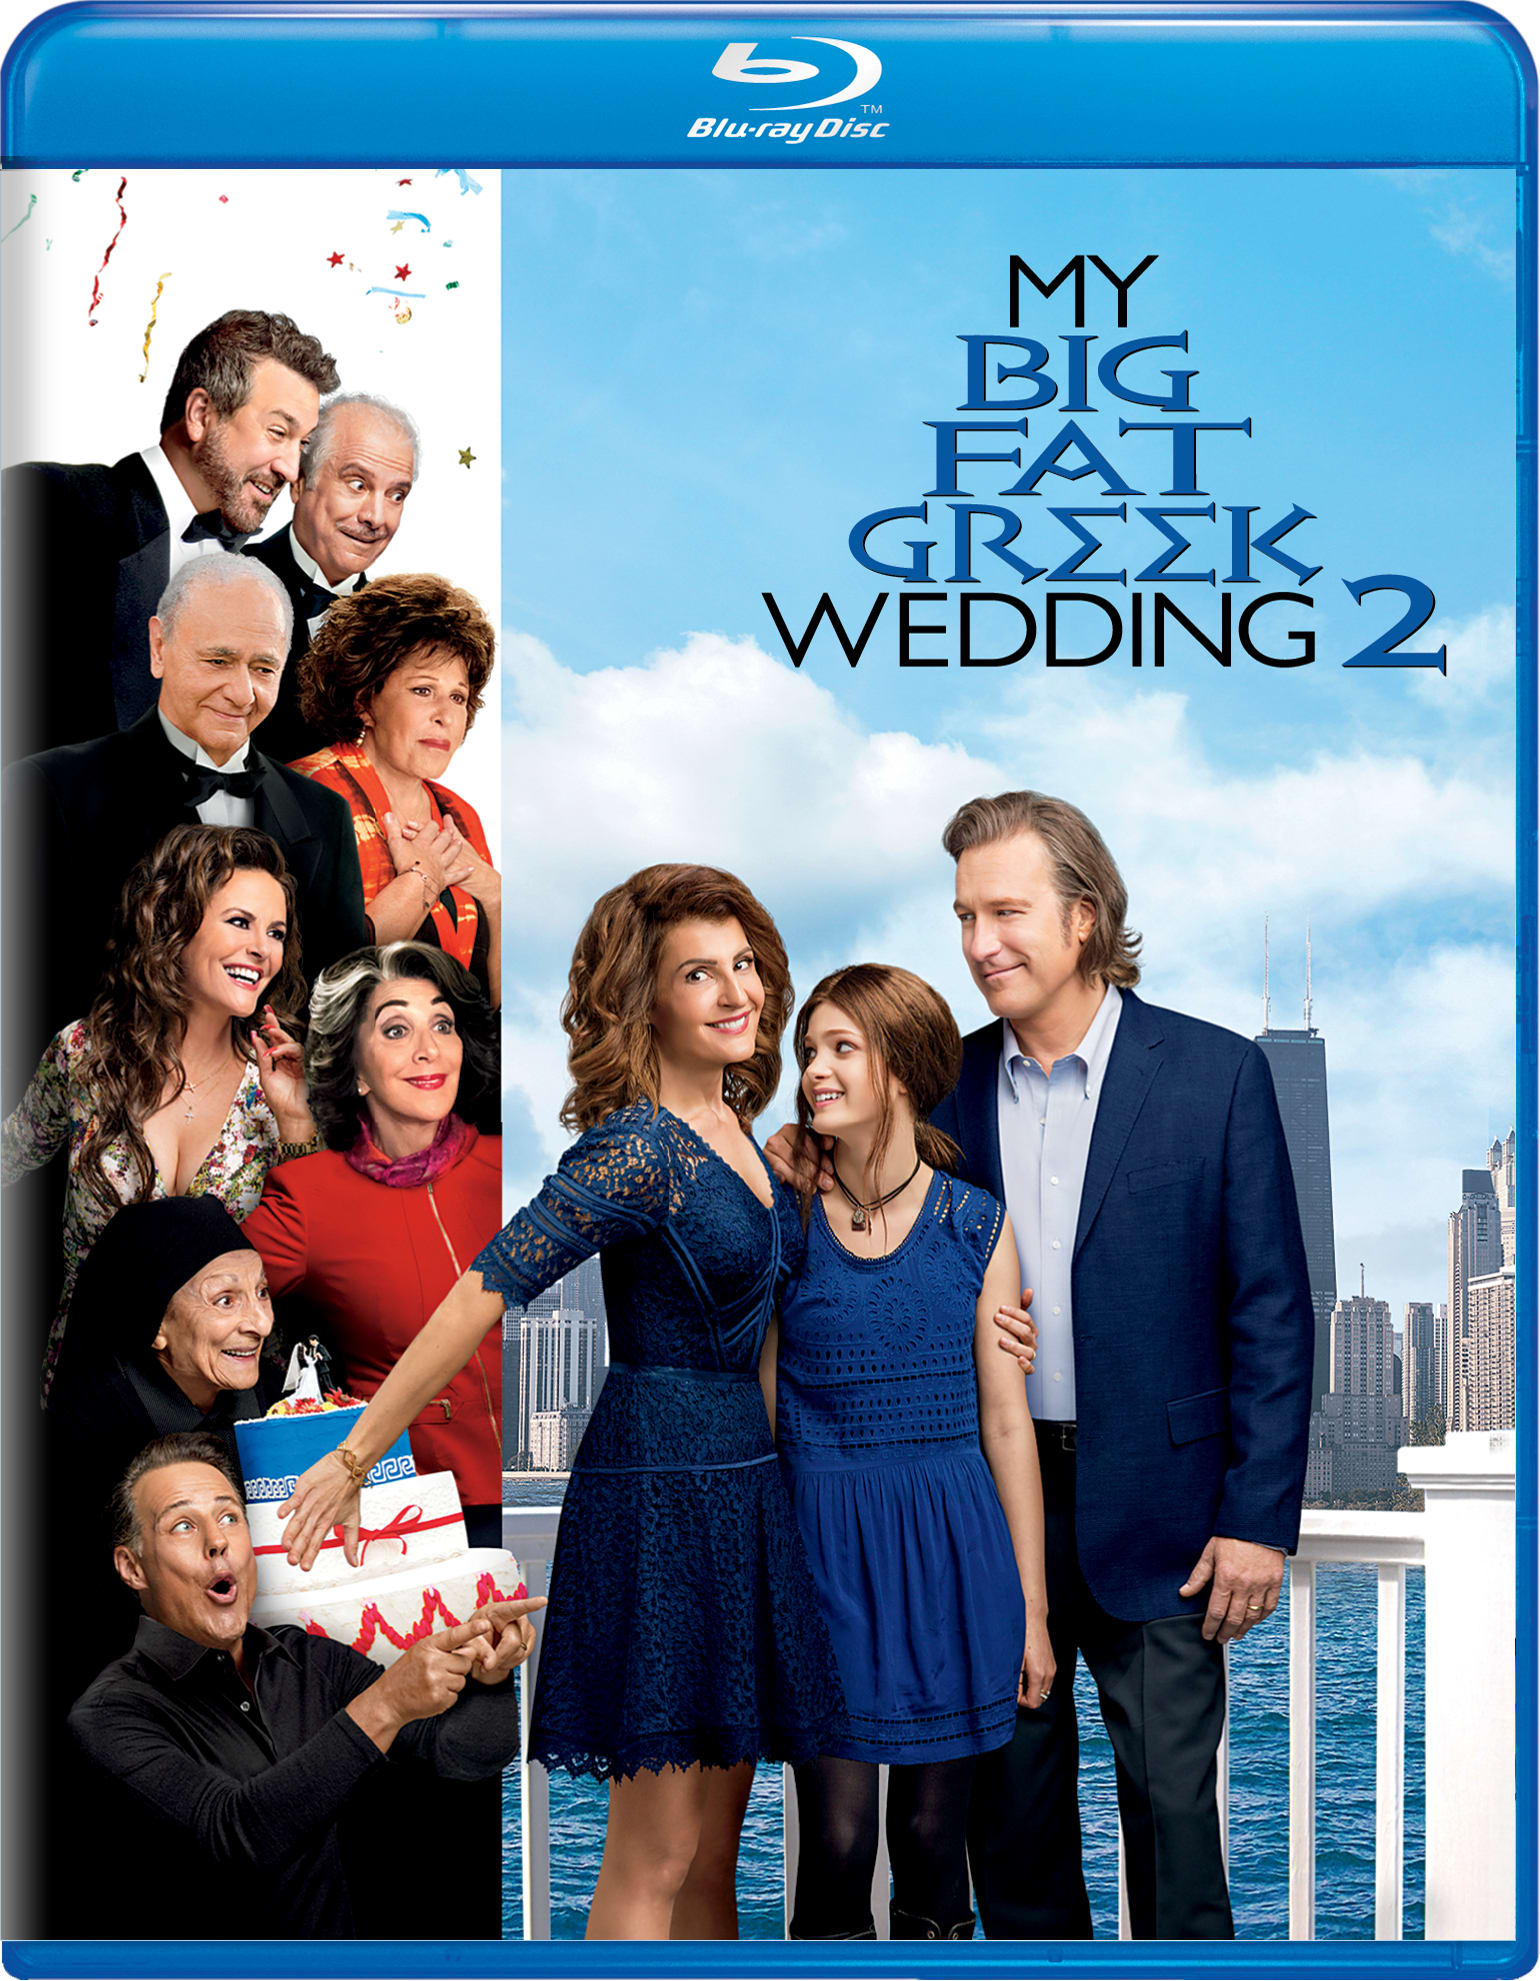 My Big Fat Greek Wedding 2 [Blu-ray]